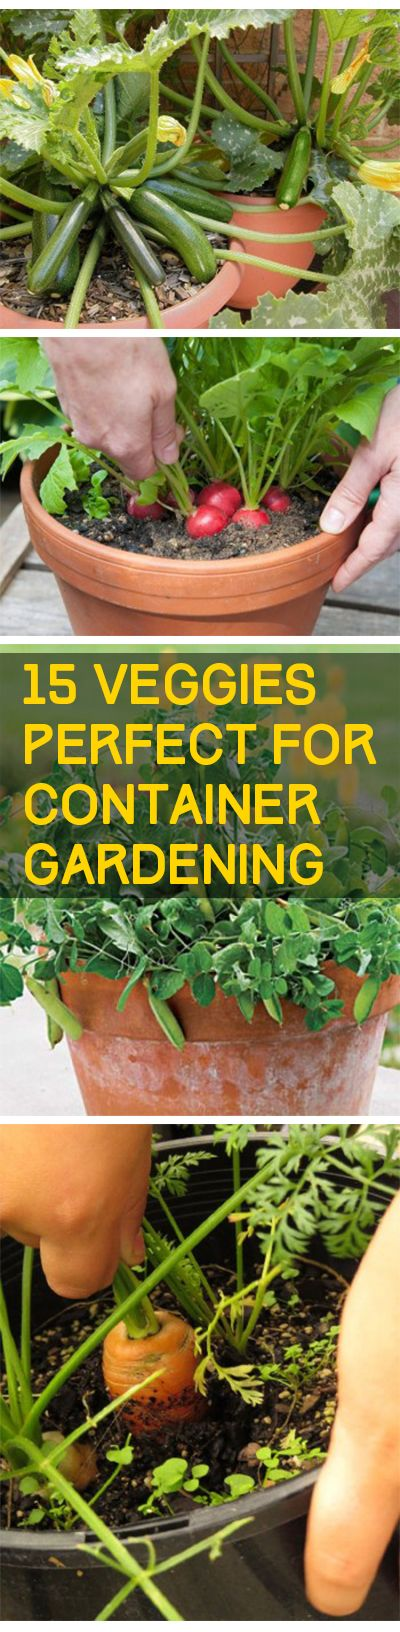 25 unique container vegetable gardening ideas on pinterest container vegetables growing vegetables in pots and growing vegetables in containers - Diy Vegetable Garden Ideas